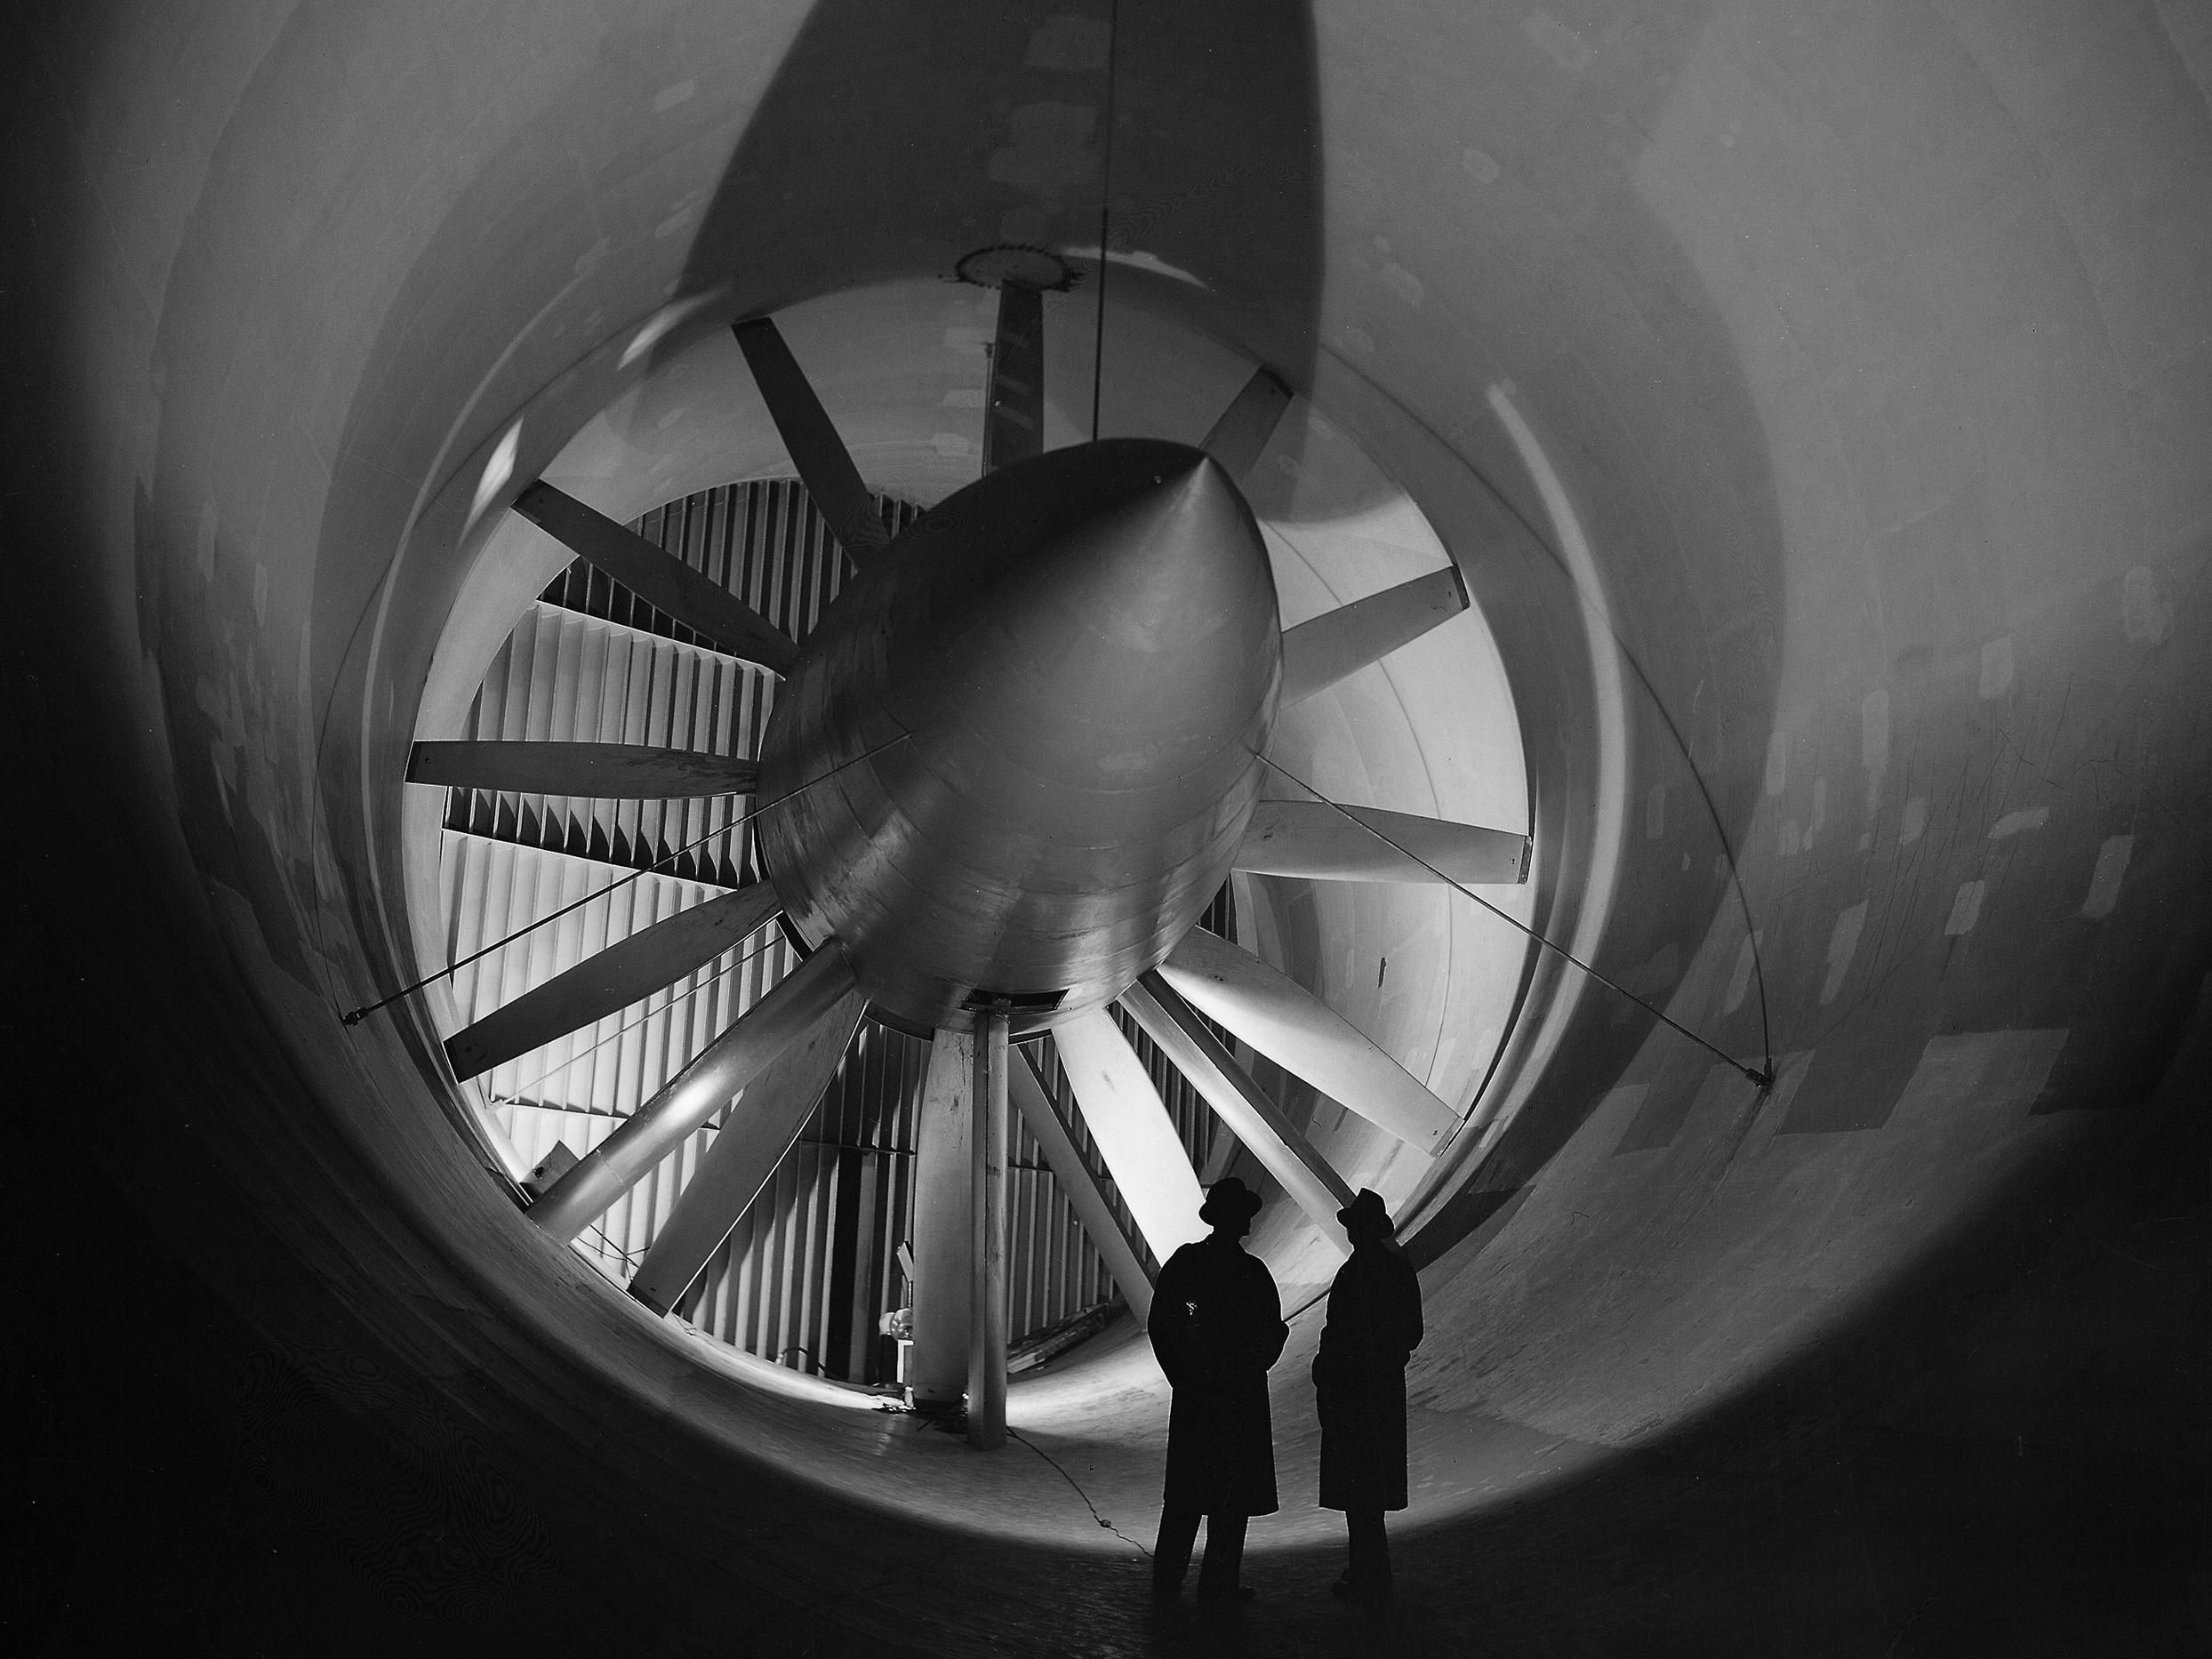 The Giant Fan Of The Altitude Wind Tunnel 2488 X 1866